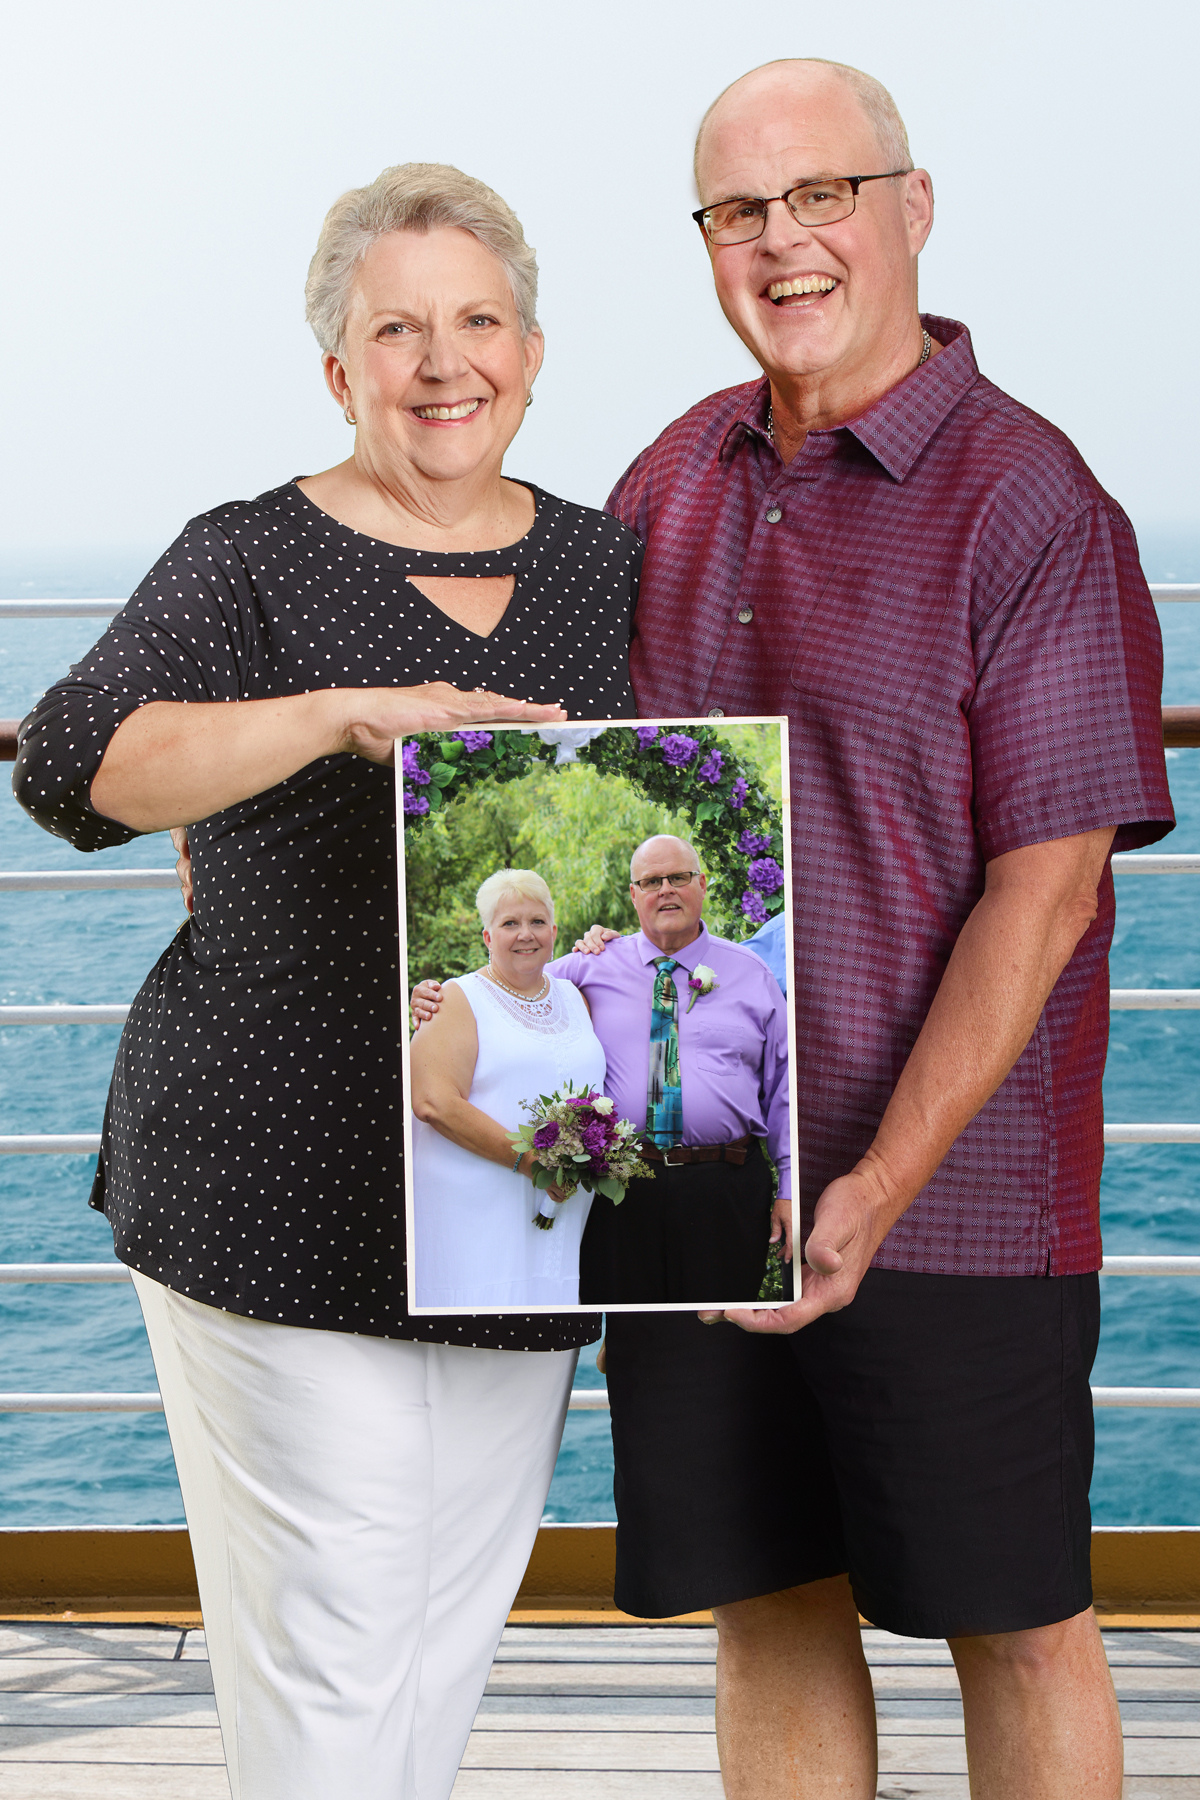 Cris and Tom Williams know success for our health goals can come in pairs.